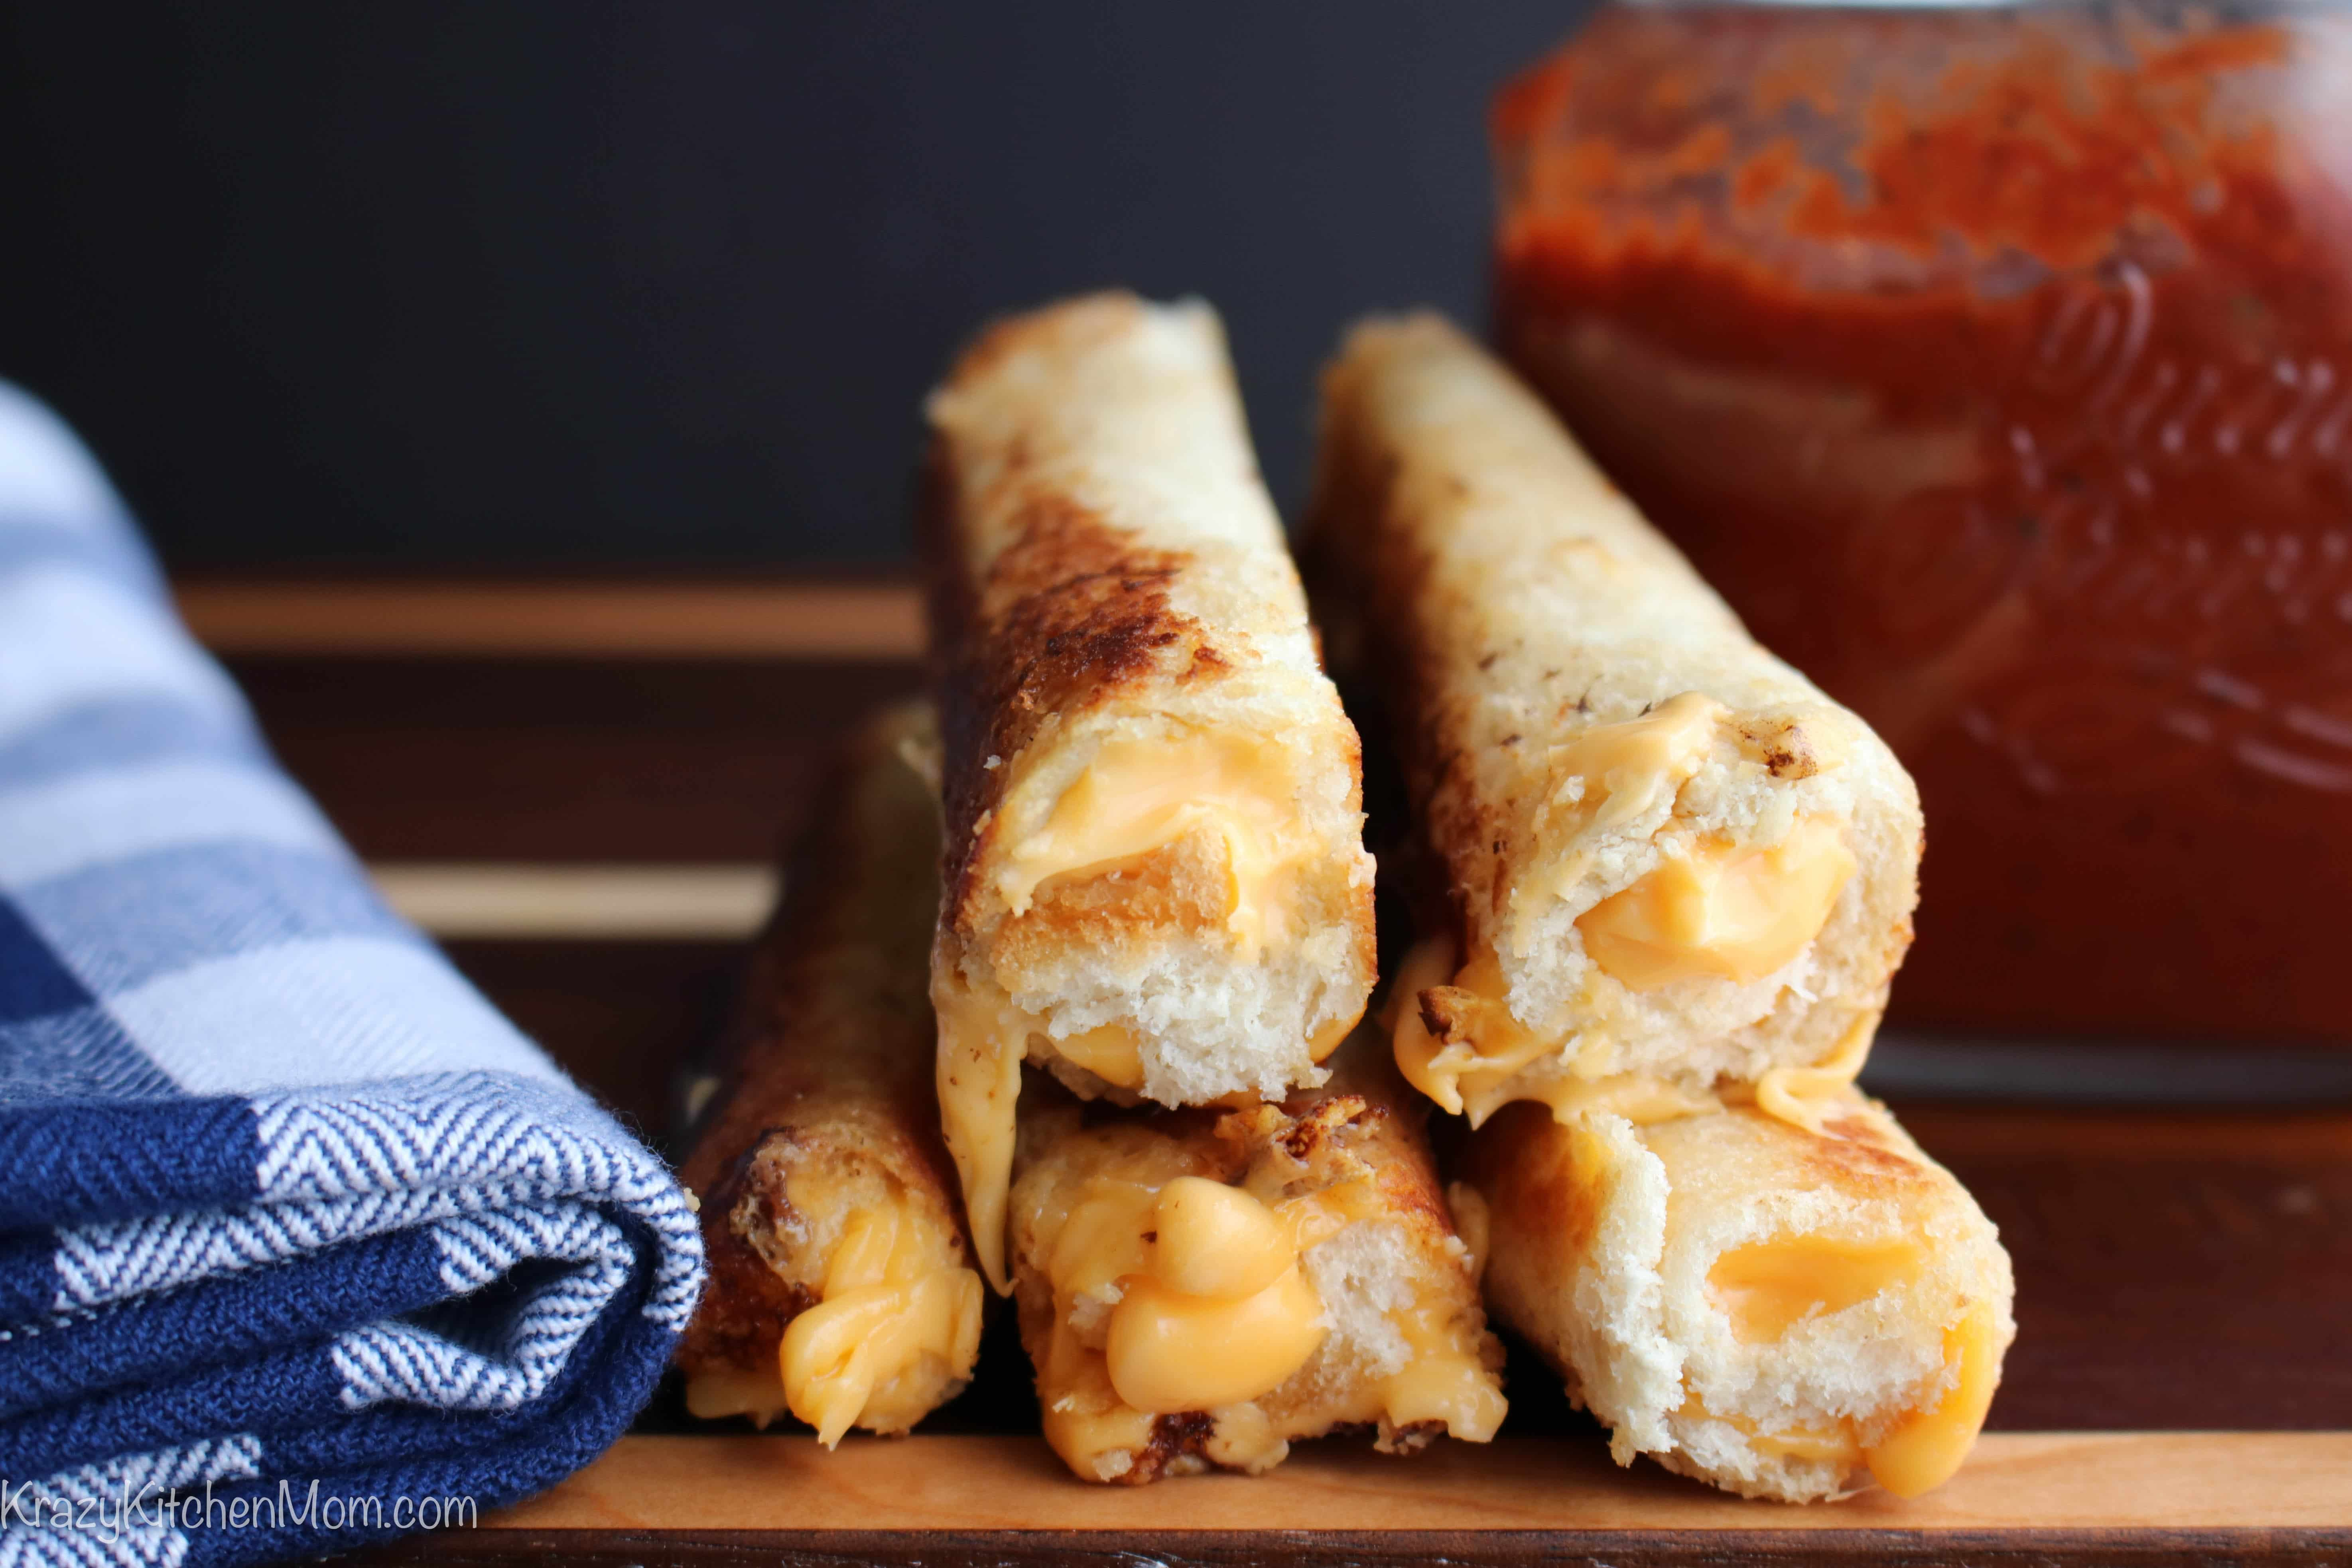 Grilled Cheese Dippers with Homemade Pizza Sauce